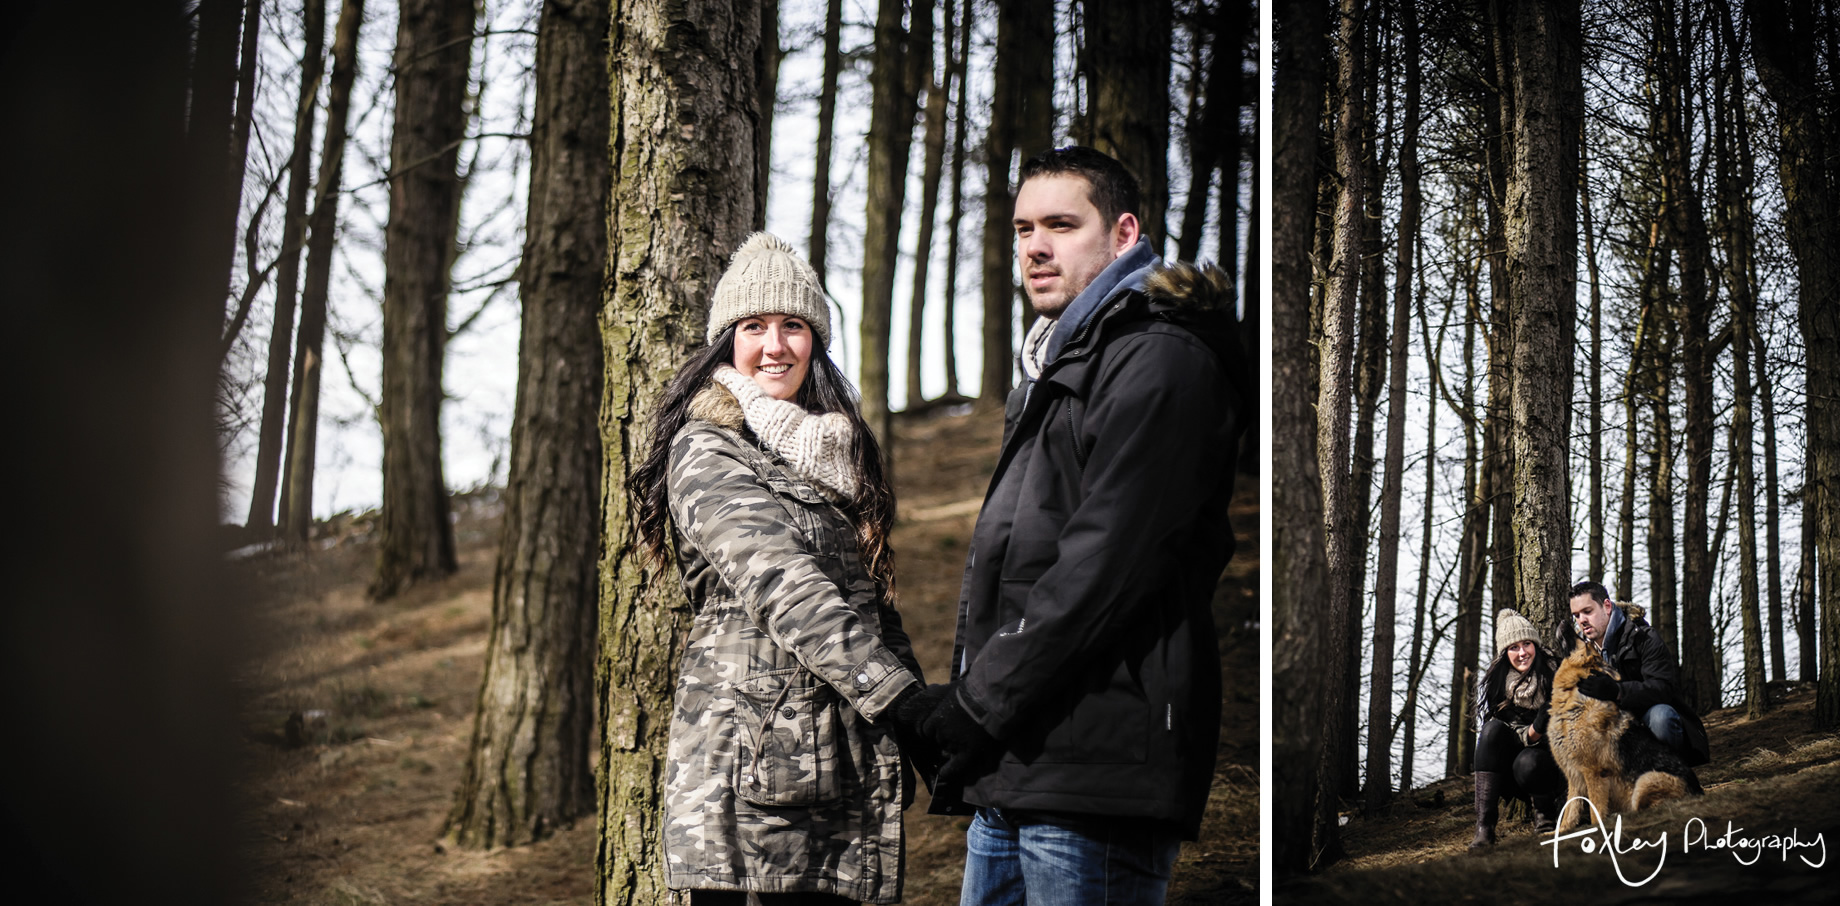 Kelly-And-Neil-Pre-Wedding-Shoot-032